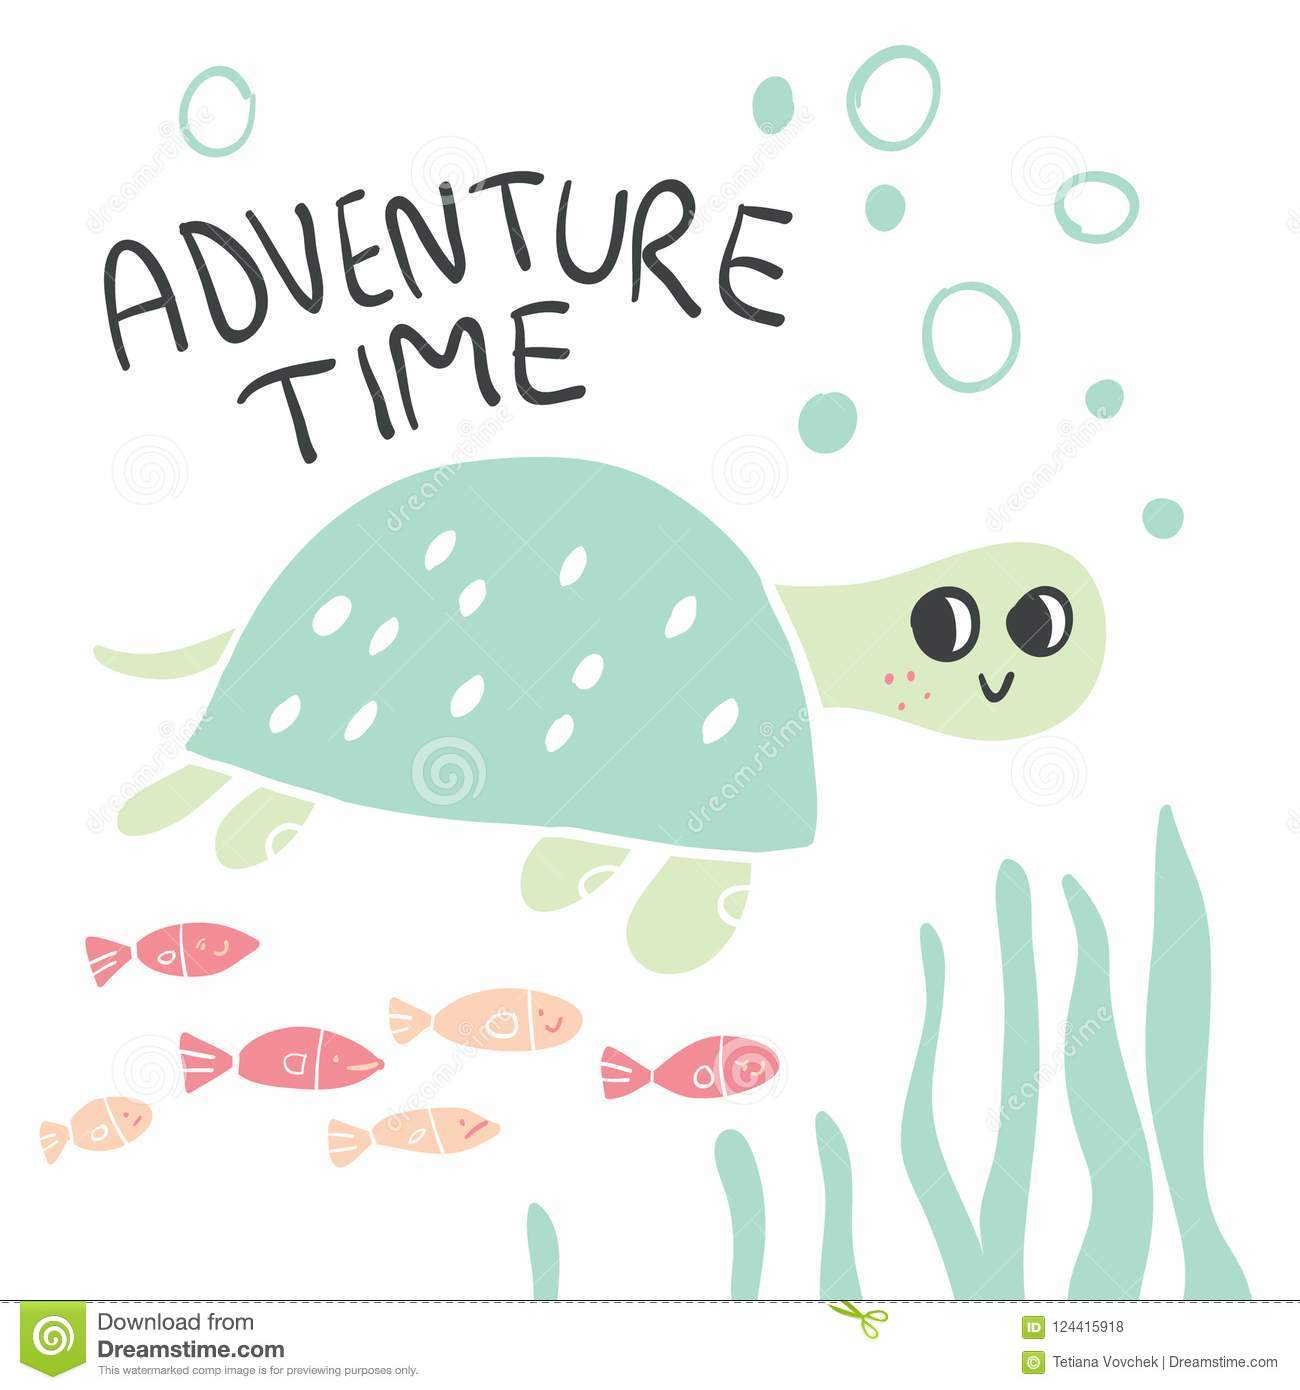 ffd9fa6a5a97 Hand Drawn Turtle With Lettering And Fish Illustration Stock Vector ...